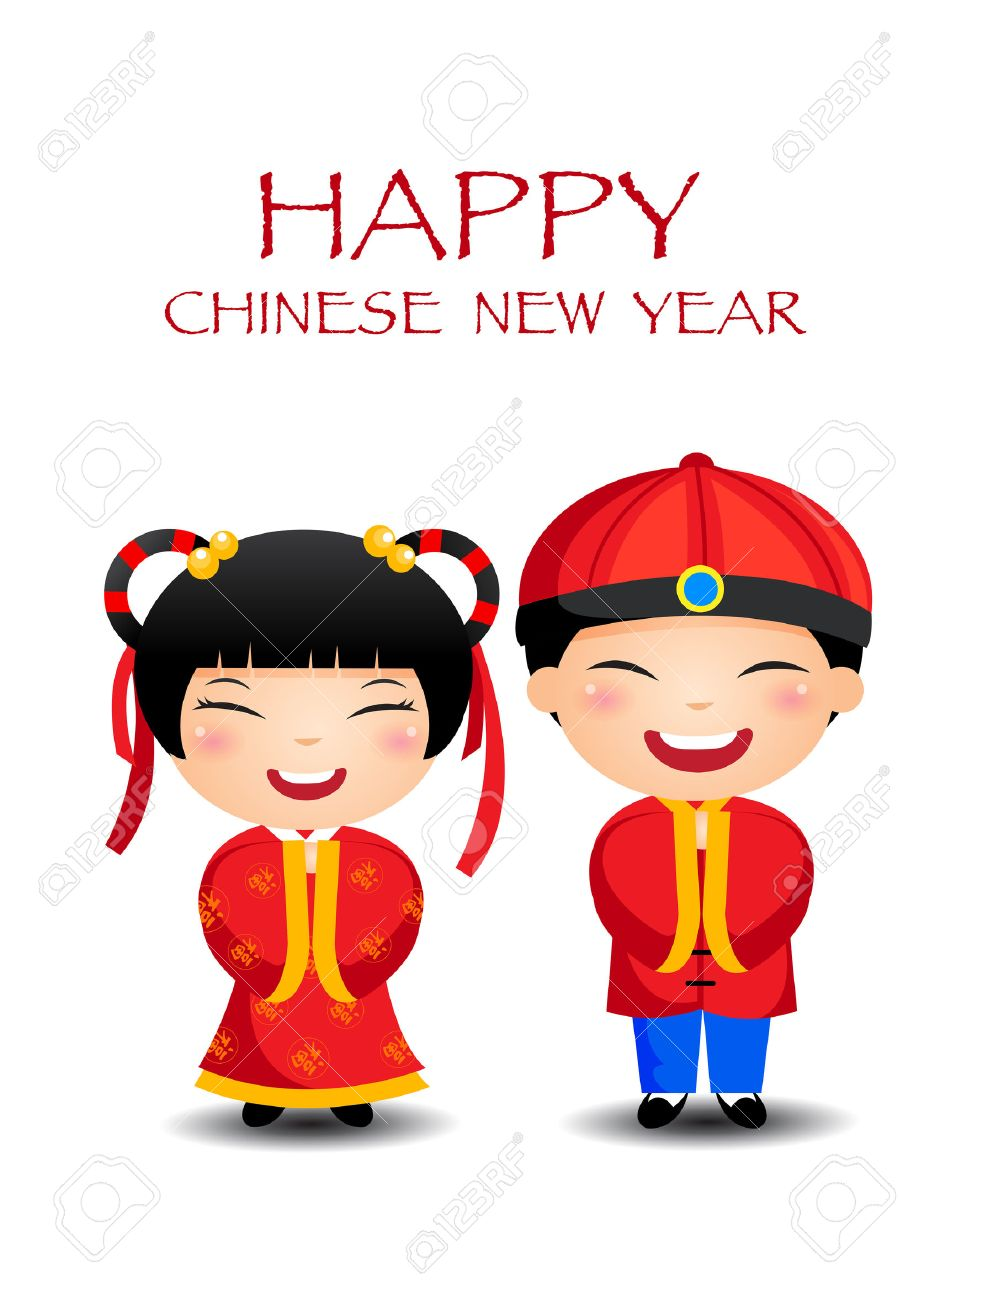 cartoon chinese kids boy girl happy chinese new year stock vector 30898998 - Happy Chinese New Year In Chinese